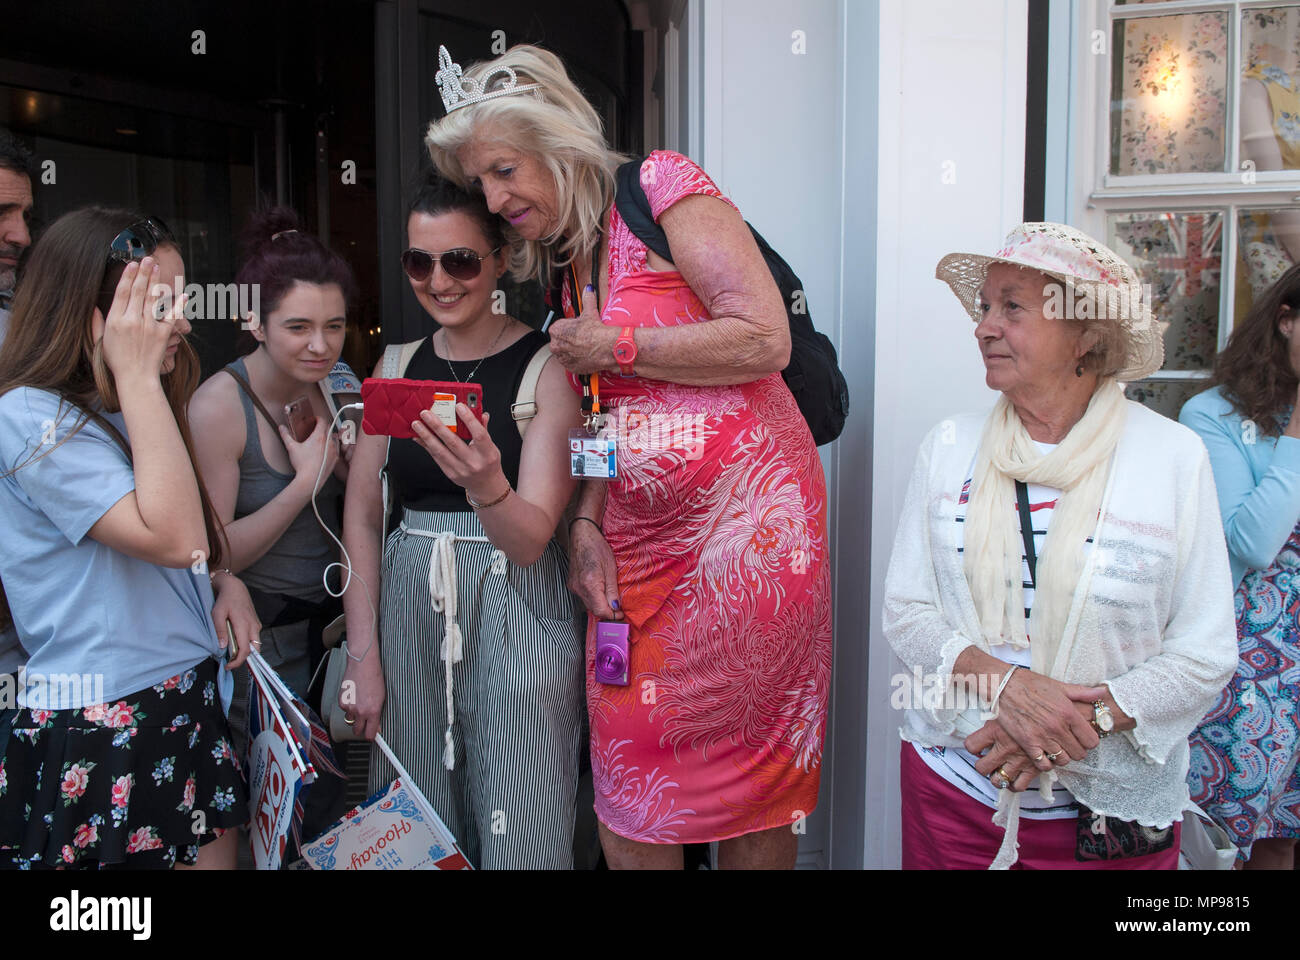 People in crowd with mobile devises iphone  smartphone, smartphones, watching Prince Harry Meghan Markle Royal Wedding on on mobile i phone 2018  HOMER SYKES Stock Photo